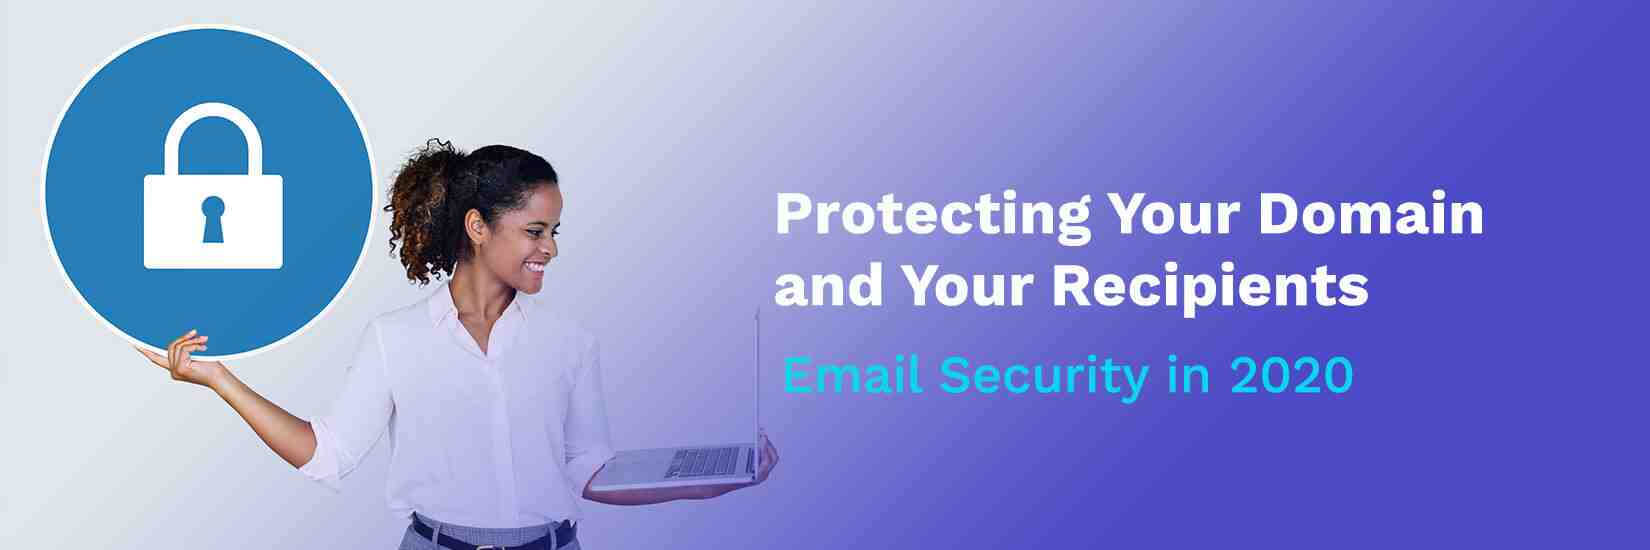 Email Security in 2020 Protecting Your Domain and Your Recipients